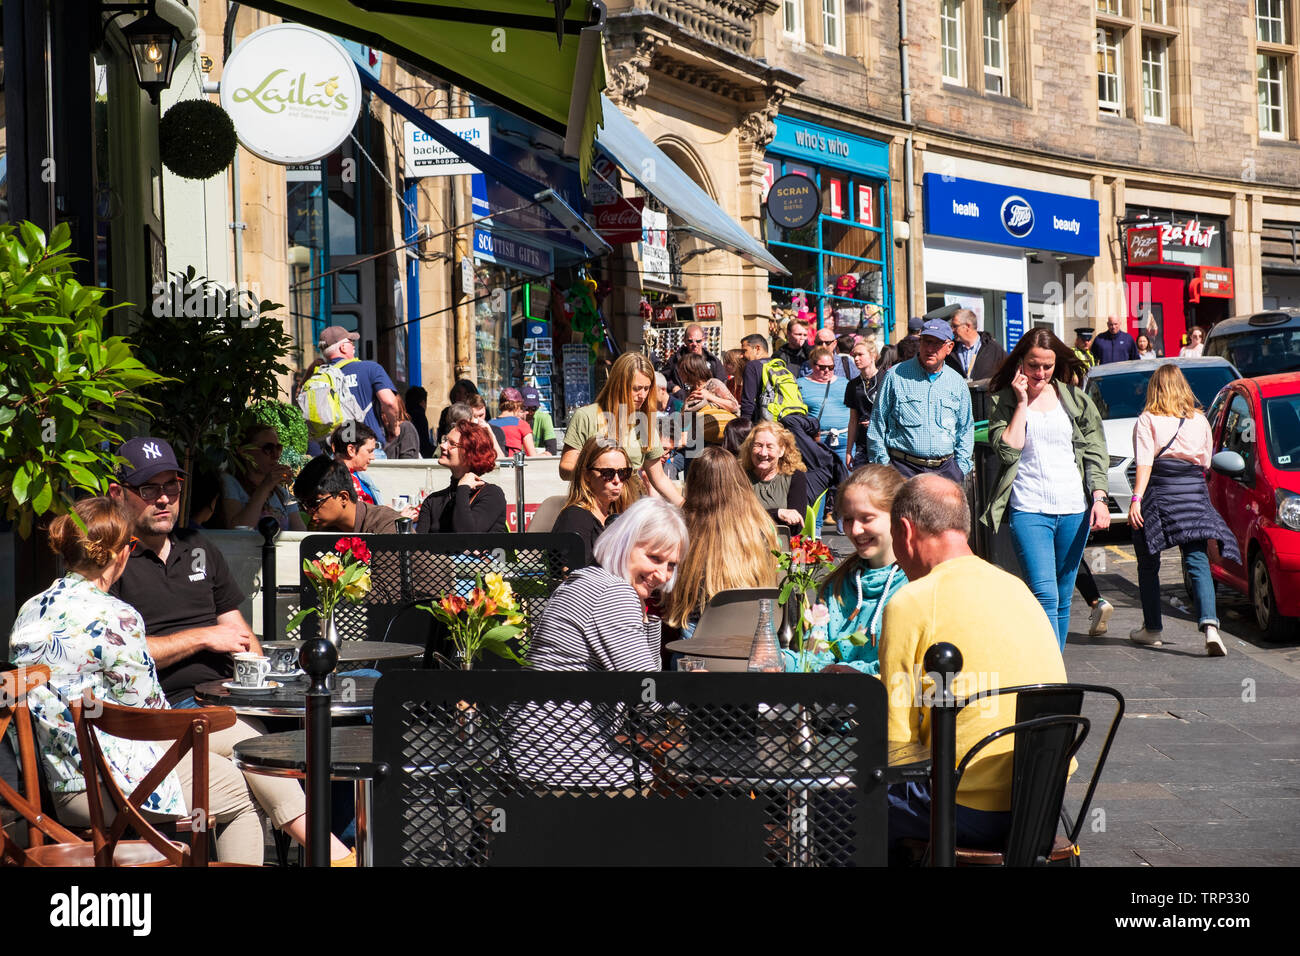 Busy cafe on Cockburn Street in Edinburgh Old Town, Scotland, UK - Stock Image